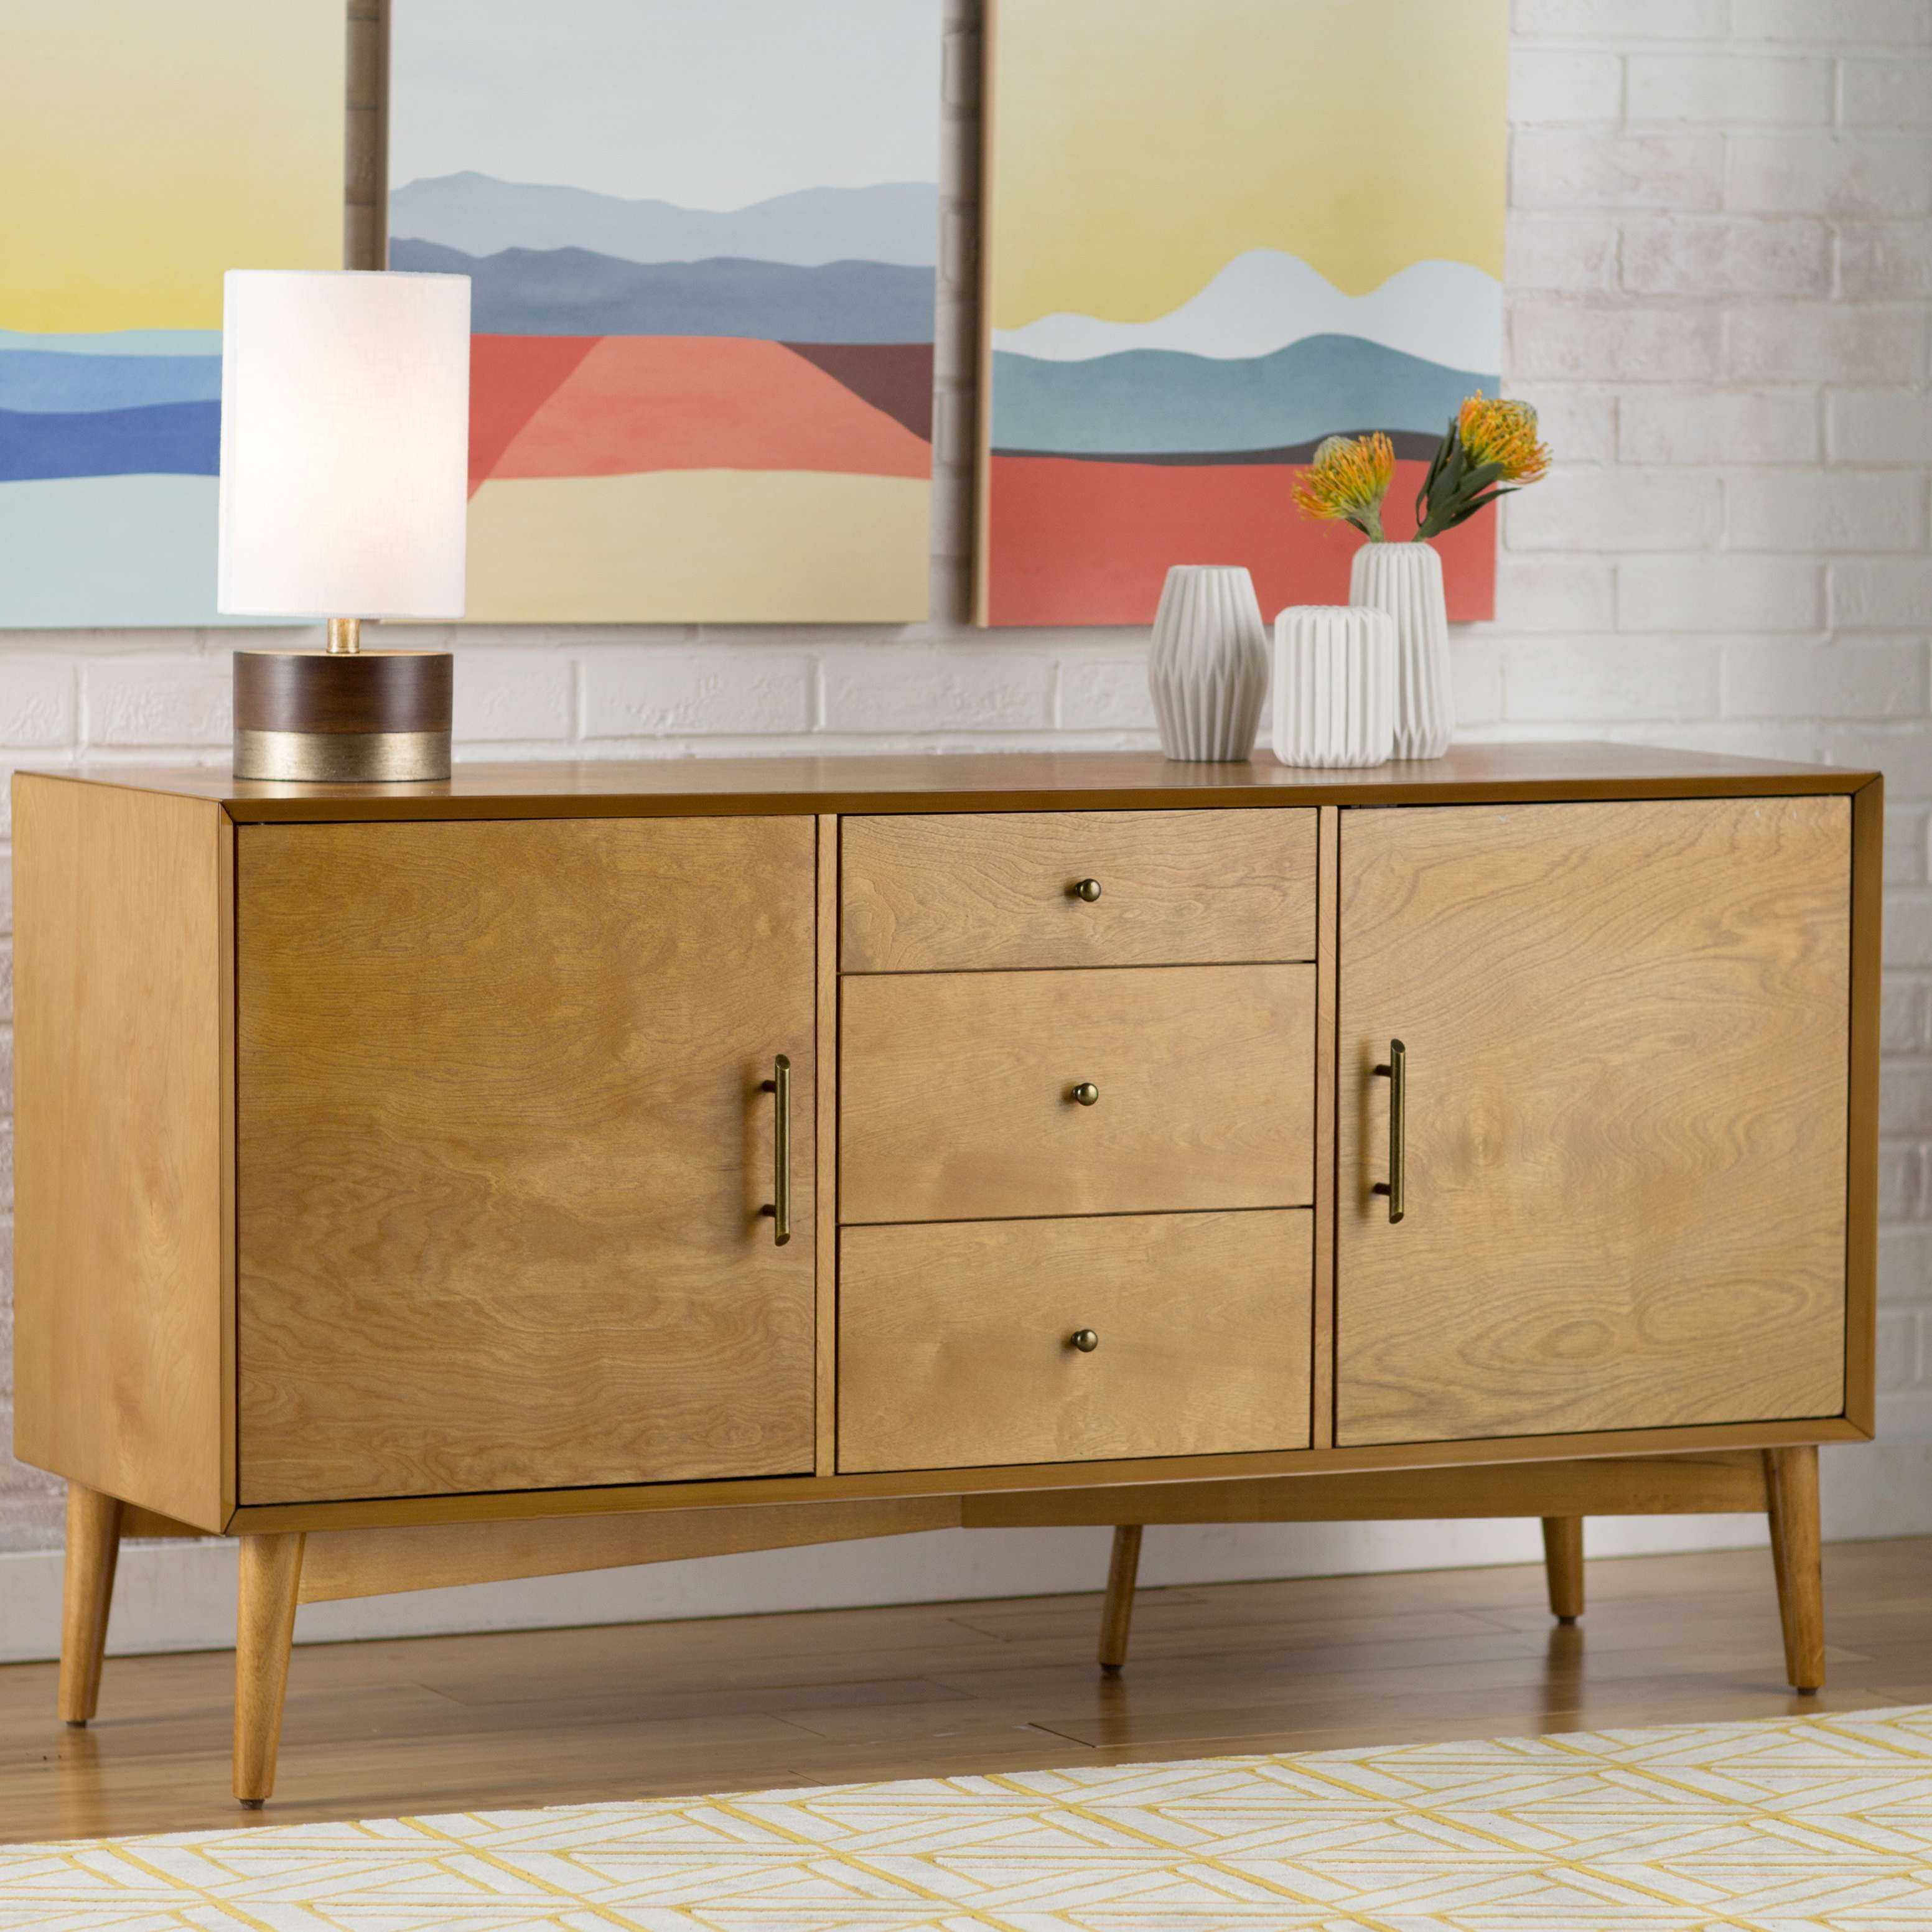 Langley Street Easmor Sideboard & Reviews | Wayfair Intended For Magic The Gathering Sideboards (View 17 of 24)